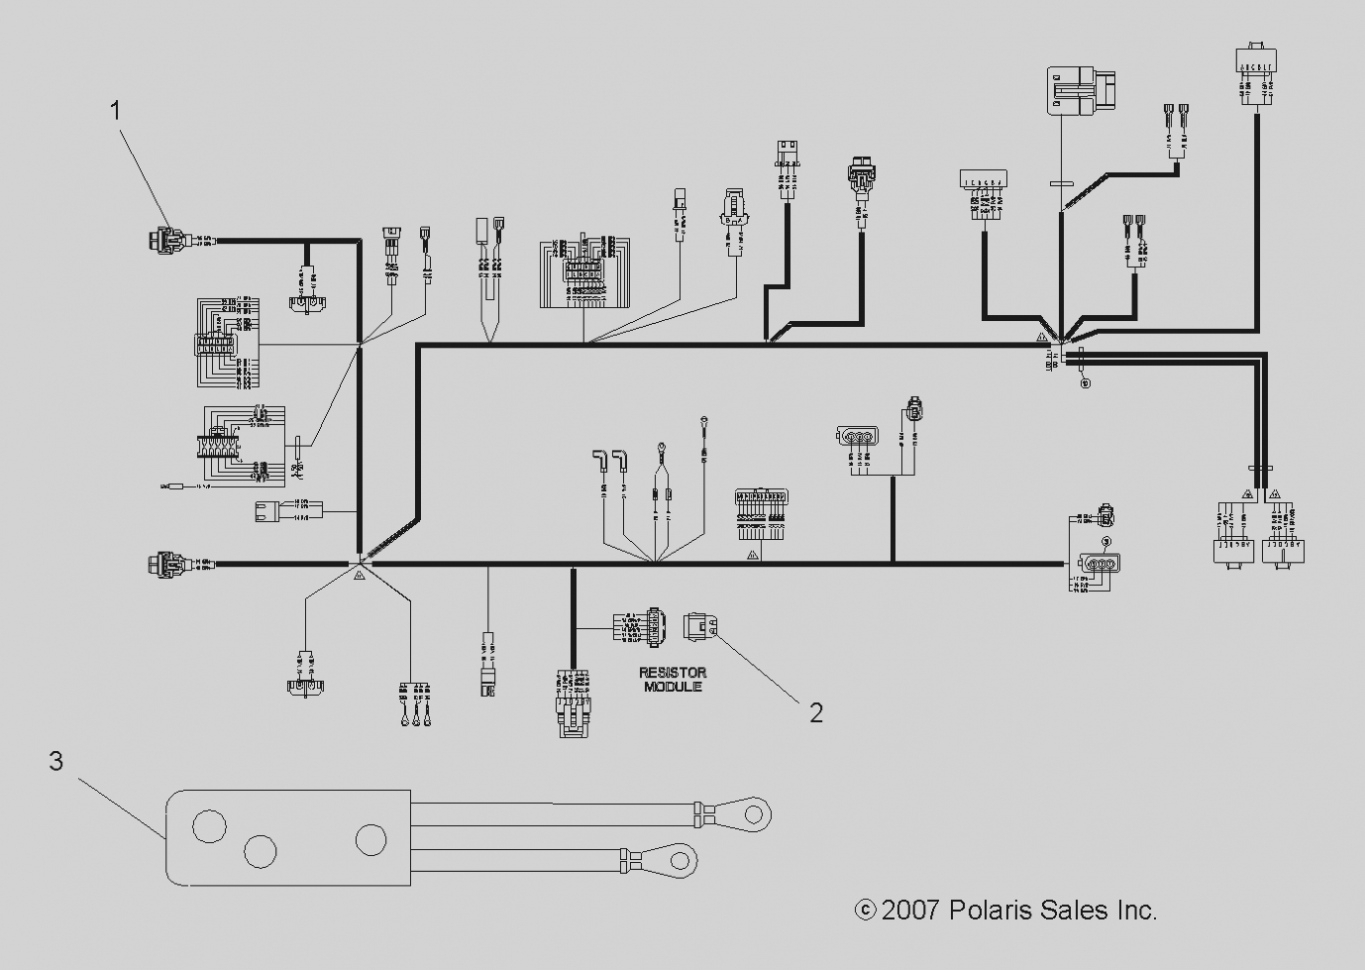 Polaris Ranger Wiring Diagram Parts Wiring Diagram